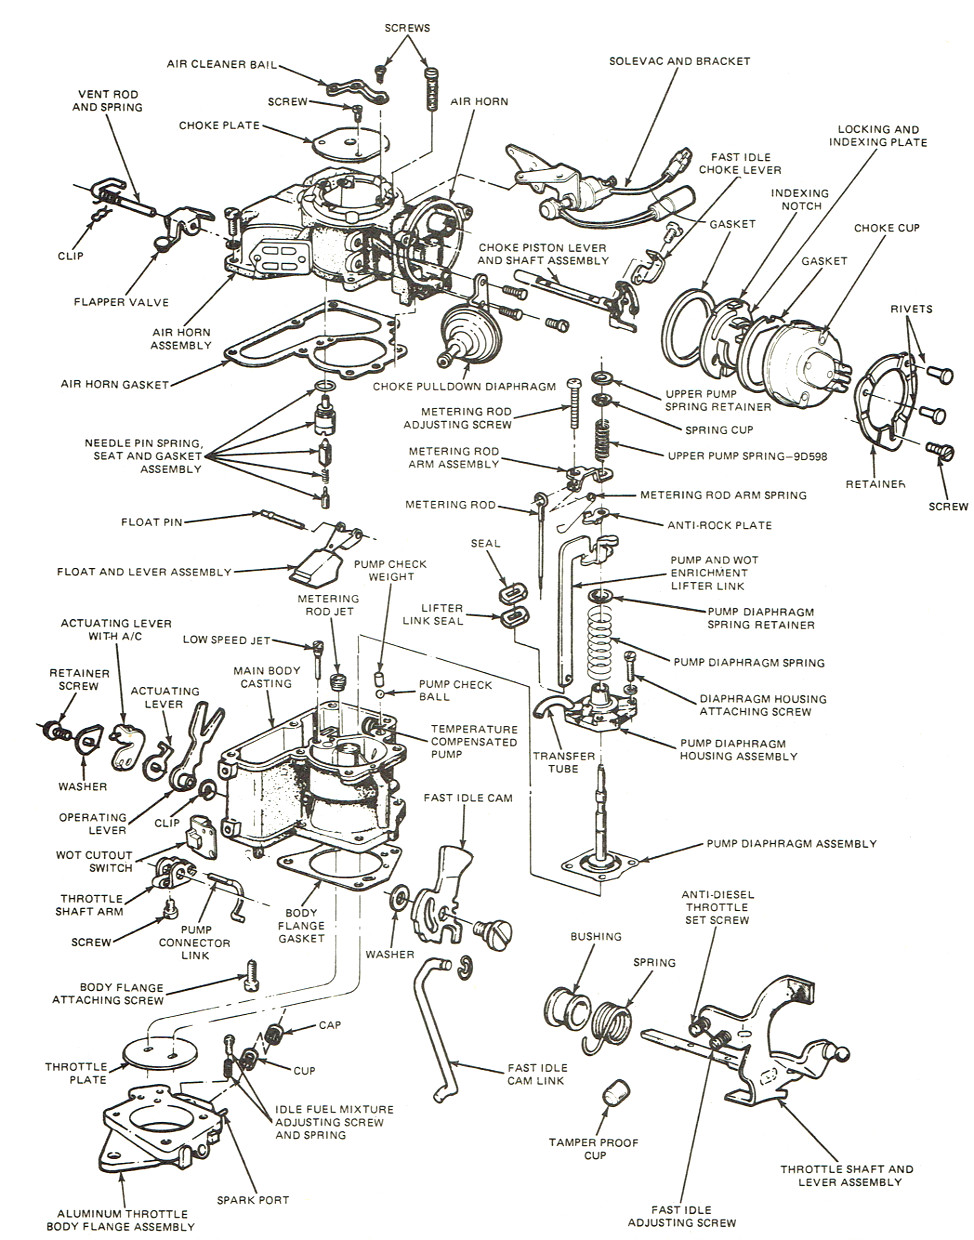 Rochester 2g Carburetor Exploded View Holley 1904g Diagrams The Old Car Manual Project